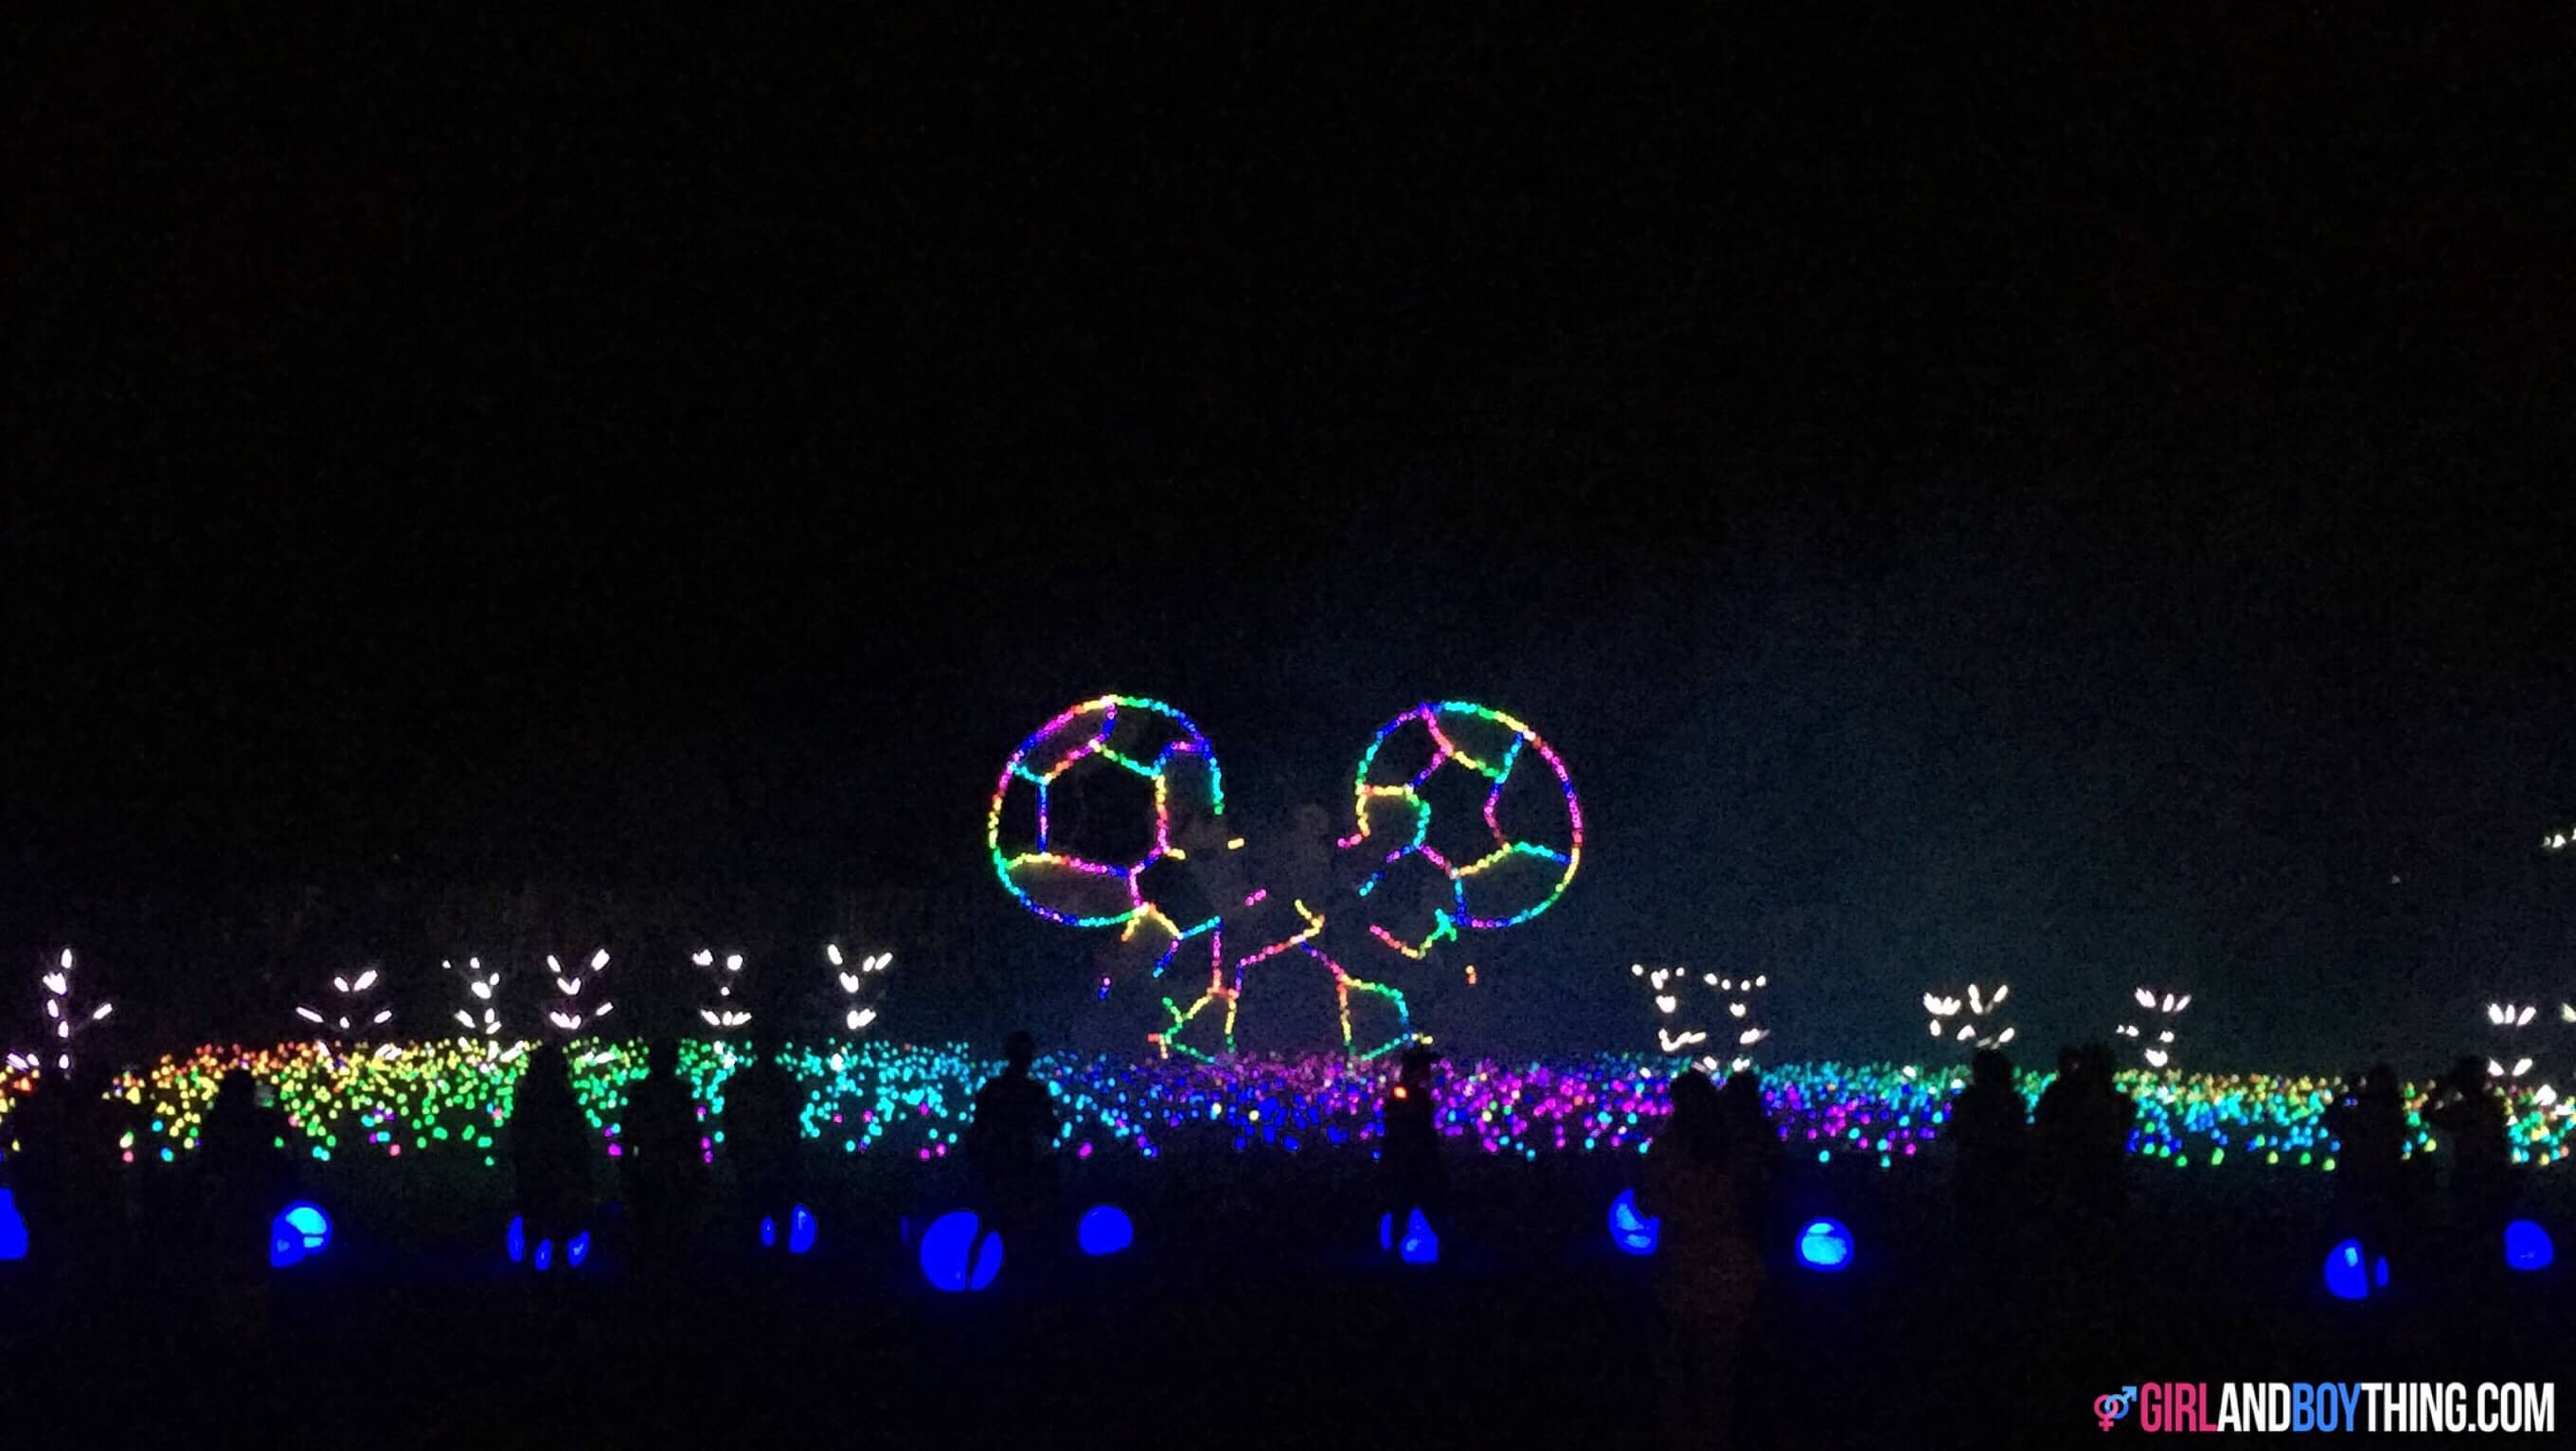 Nuvali's Festival of Lights and Sound